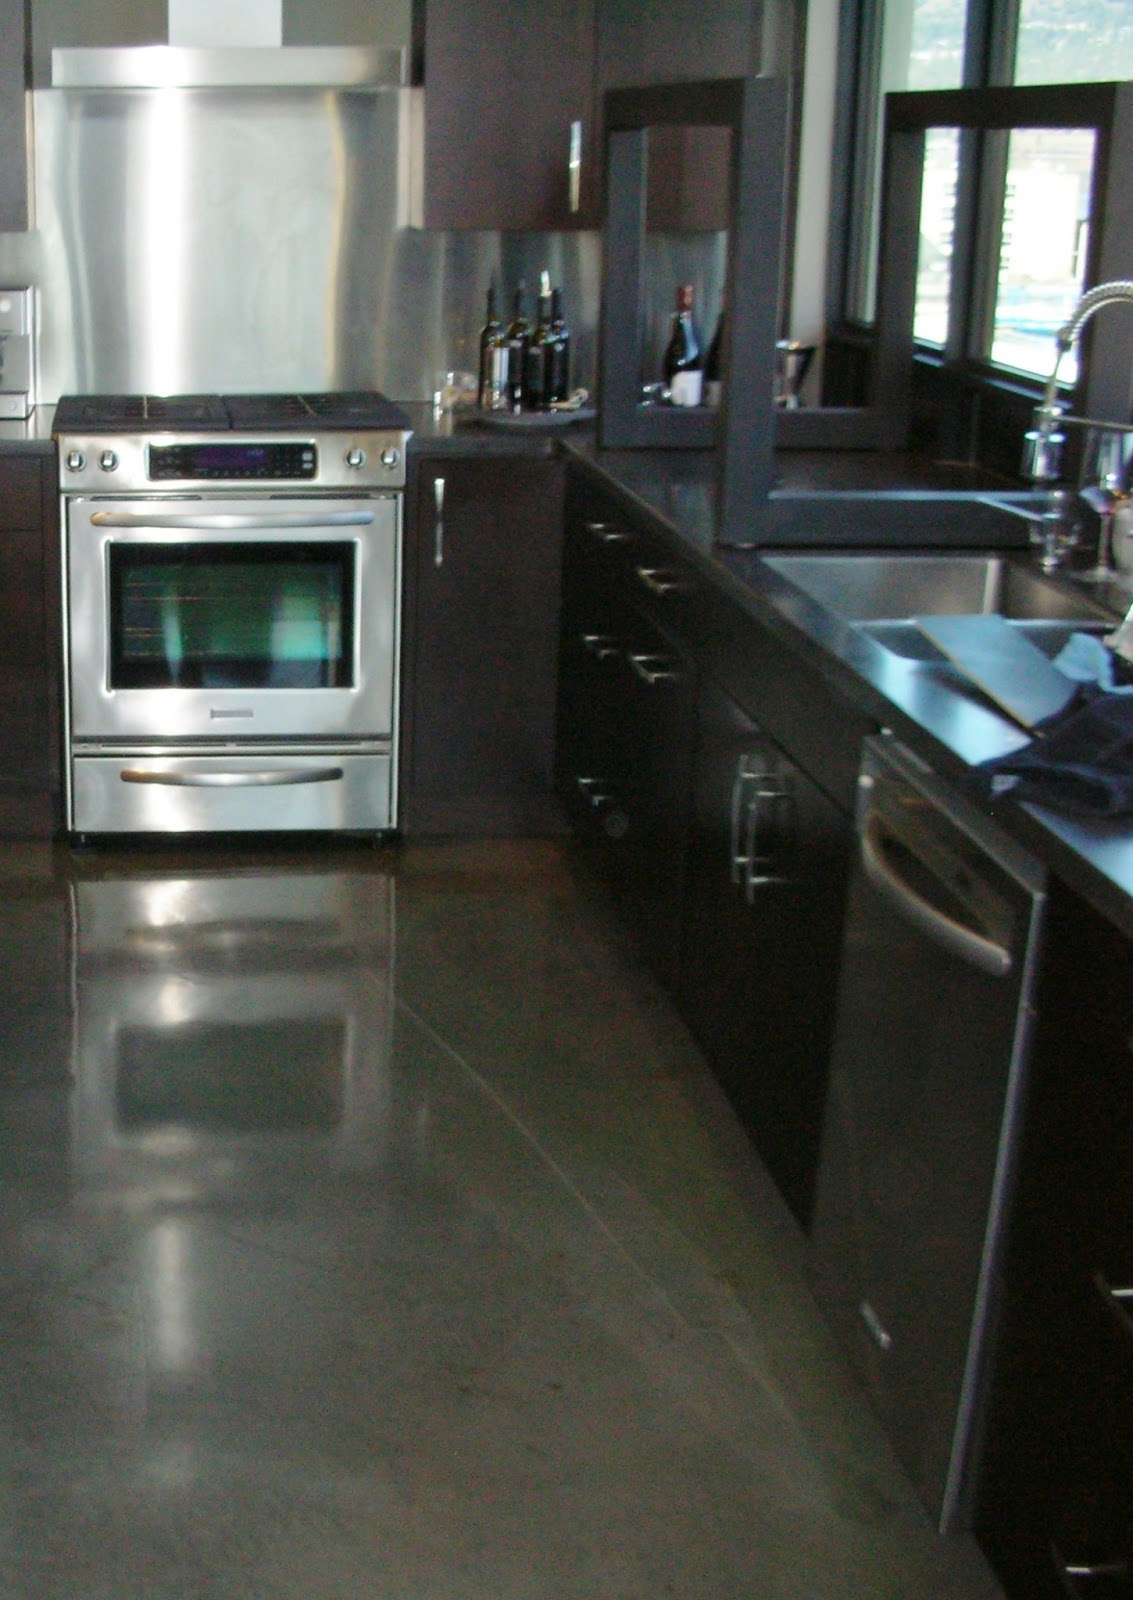 finishing basement concrete floors concrete kitchen floor Help remedy Lackluster Concrete Floors by Finishing them Naturally inexpensive starting at 2 50 3 50 sq ft Contact MODE CONCRETE in Kelowna